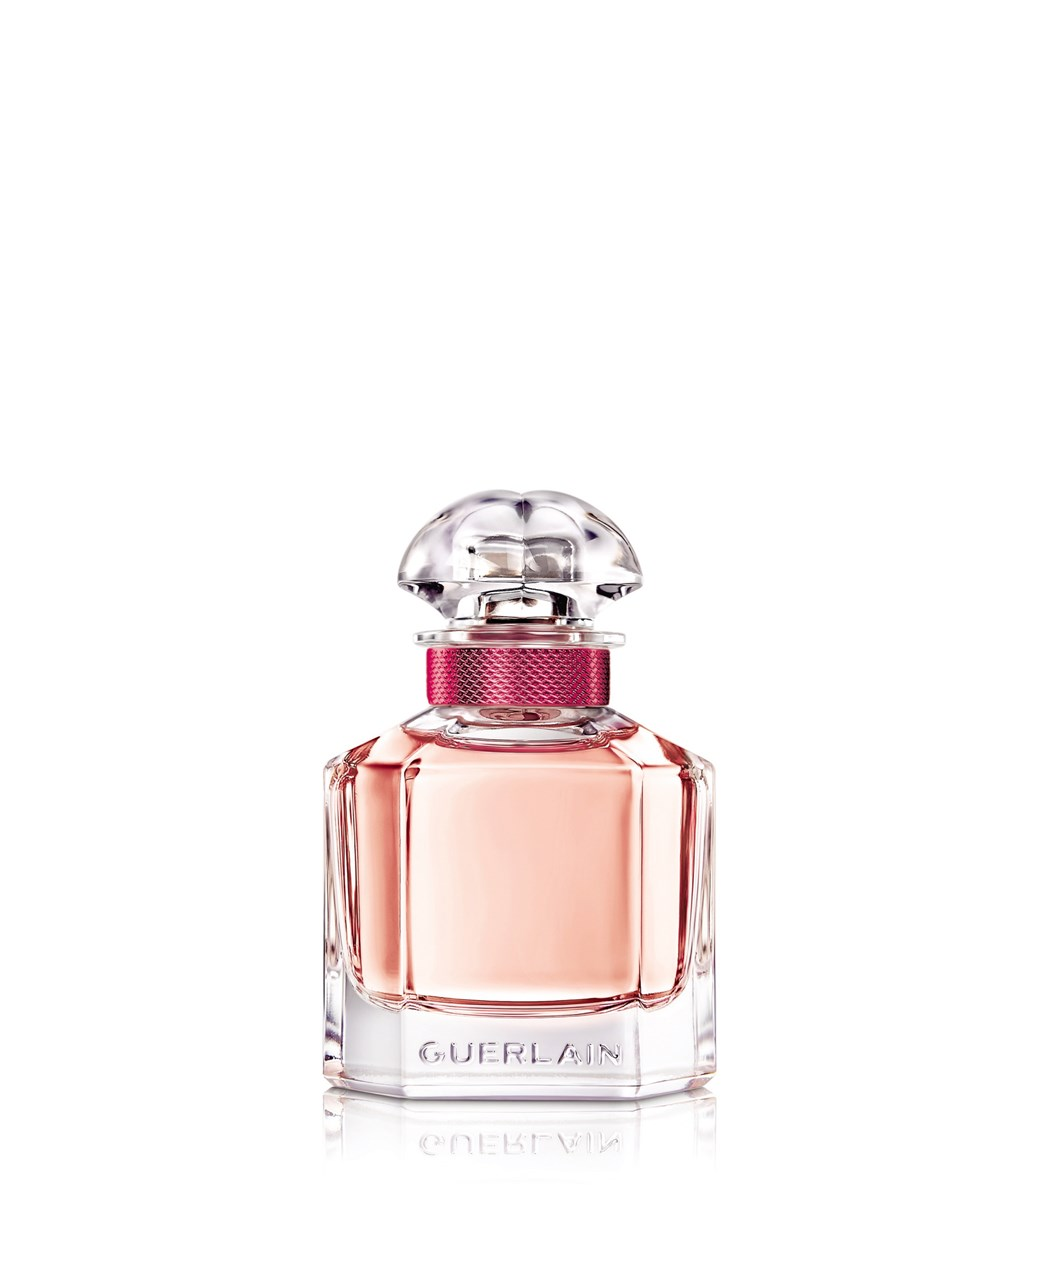 Mon Guerlain Bloom of Rose Eau de Toilette Fragrance Spray